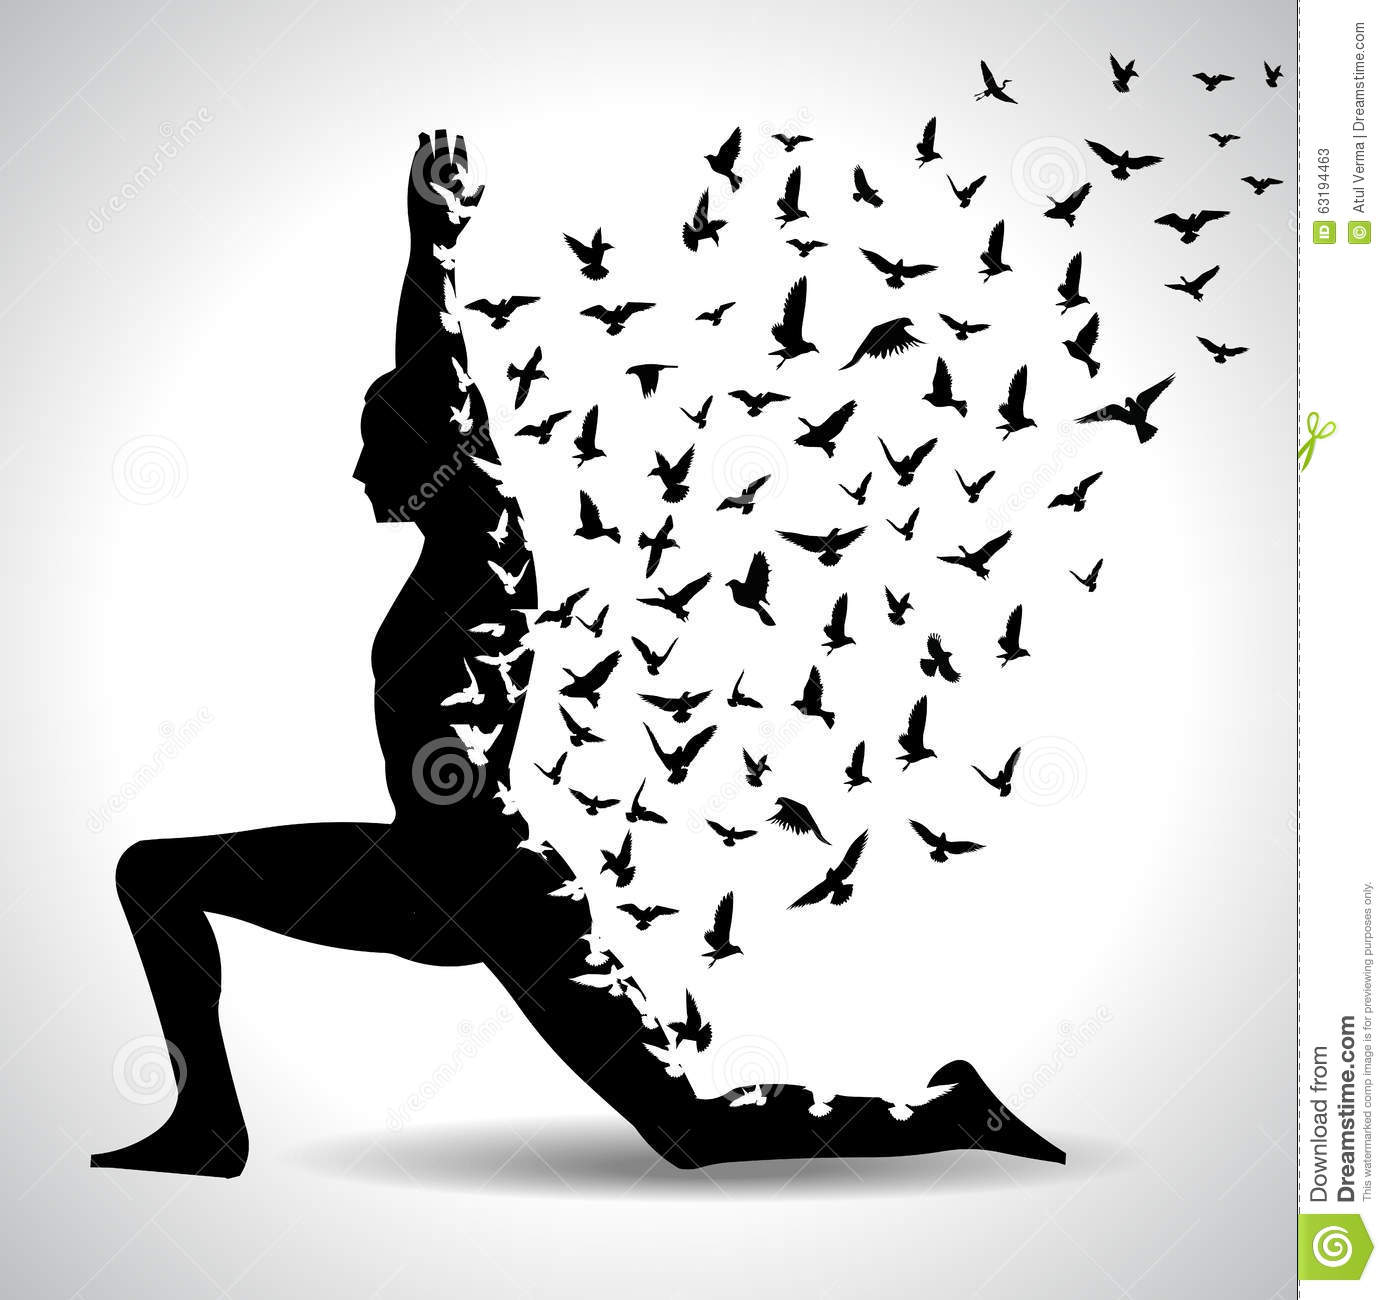 Yoga Pose With Birds Flying From Human Body Black And White Poster Illustration 63194463